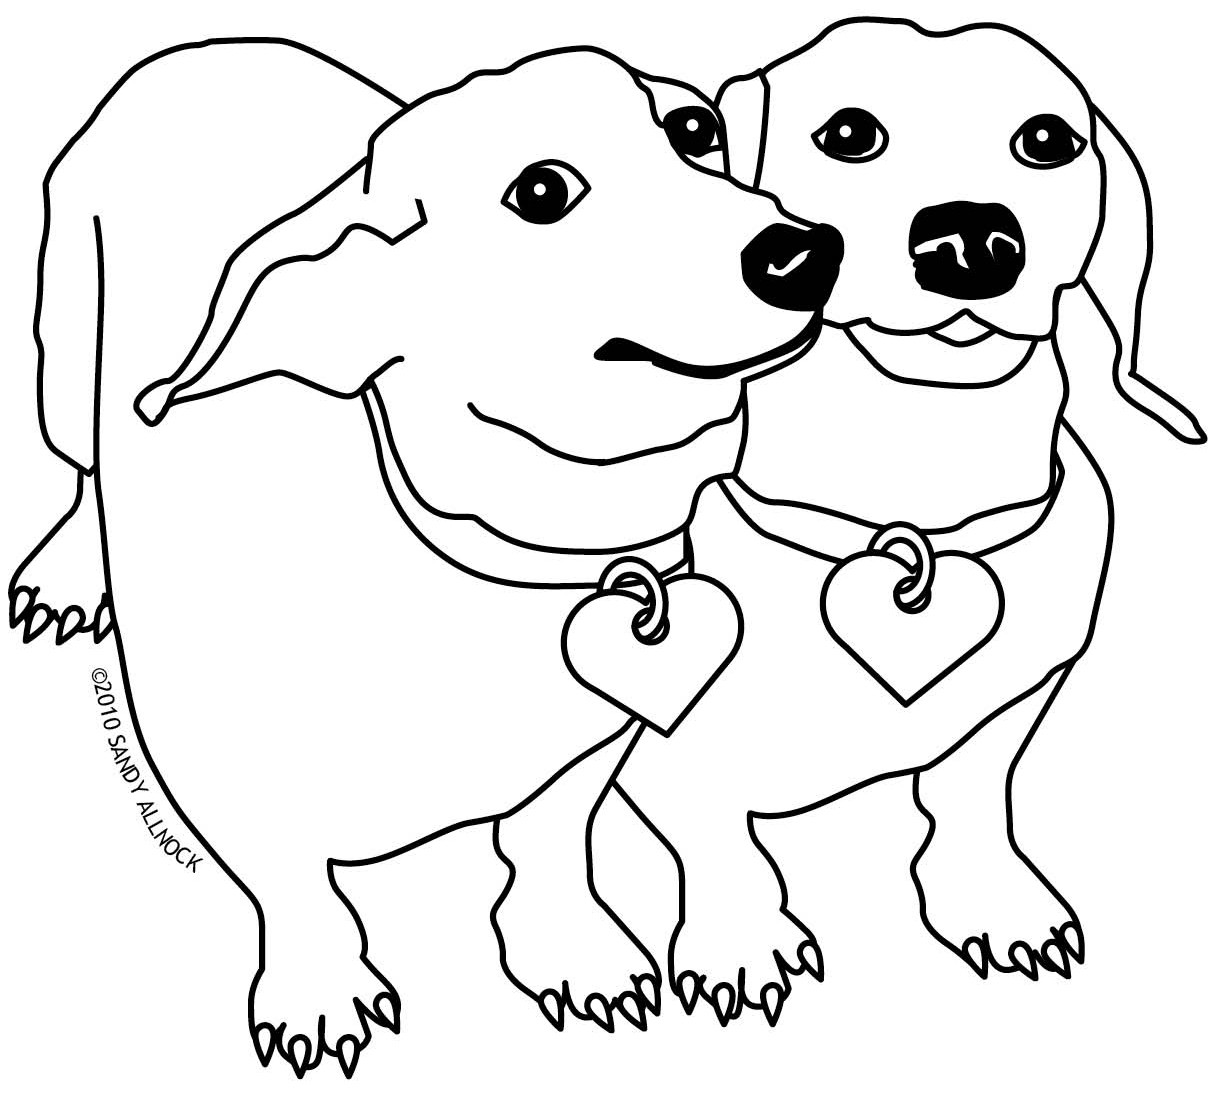 1224x1097 Kissing Prairie Dogs Coloring Page Print Download Animal Simple